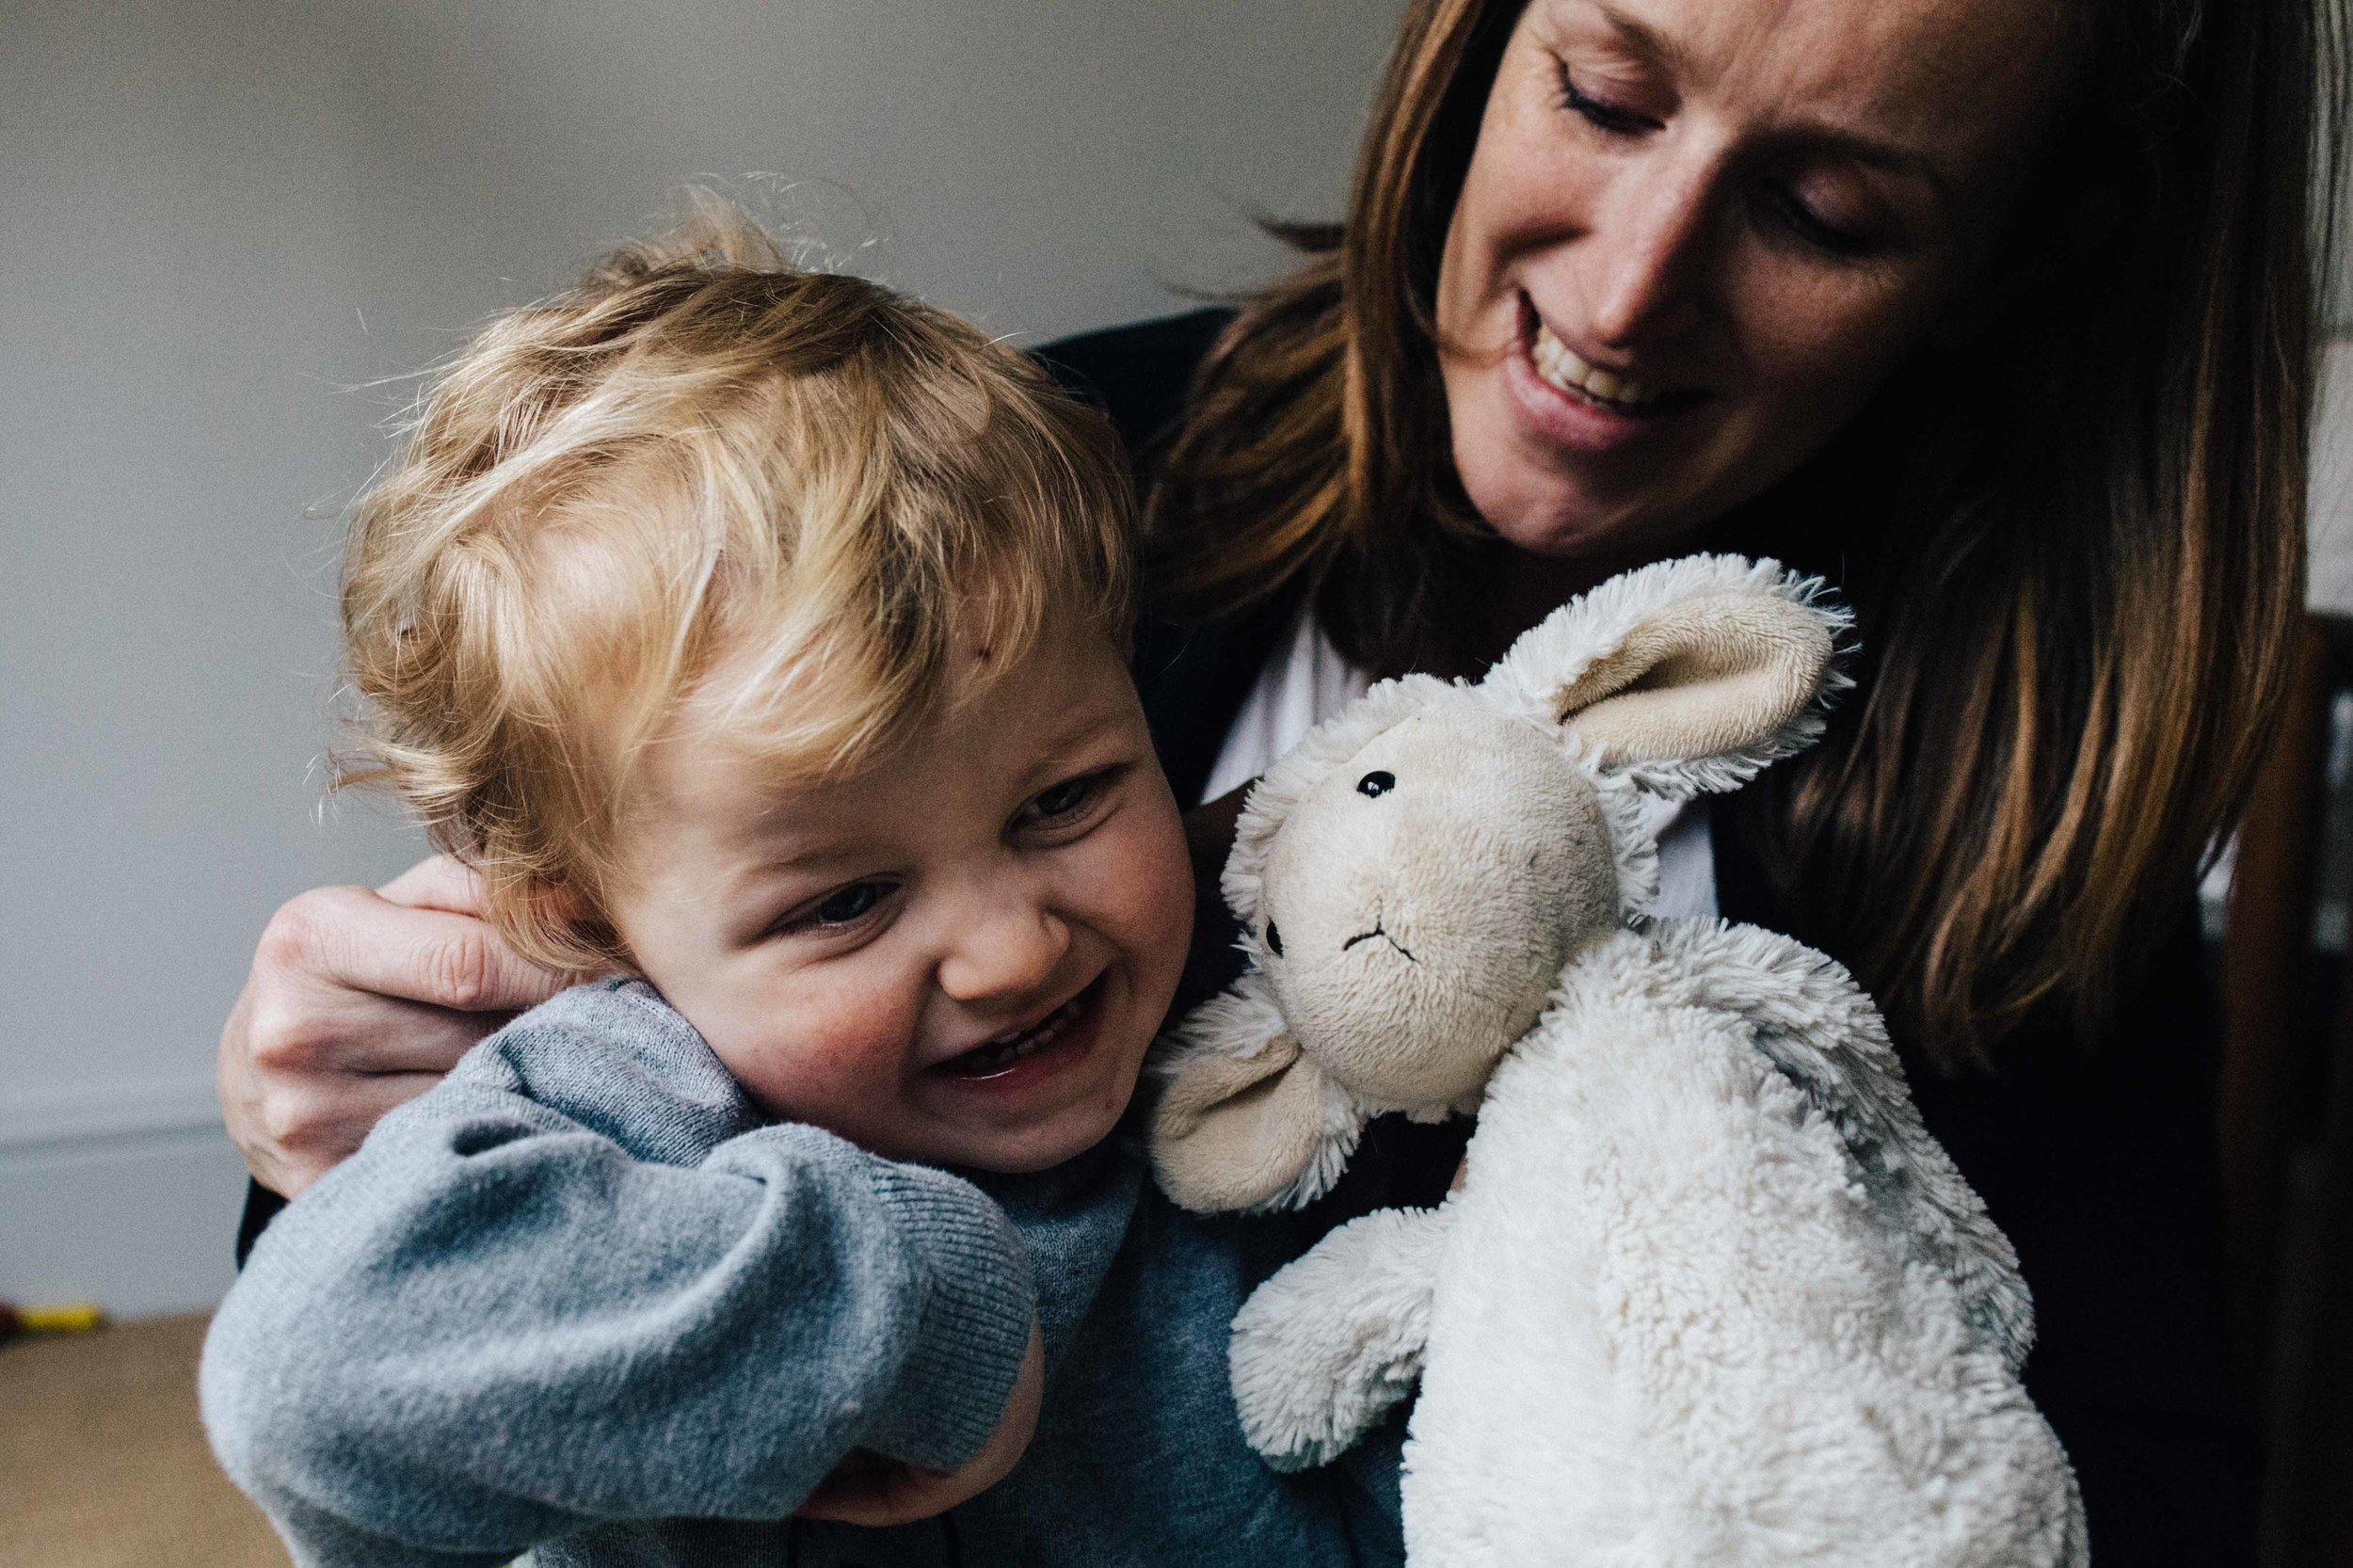 London family photographer - Portrait of mother and son during family session